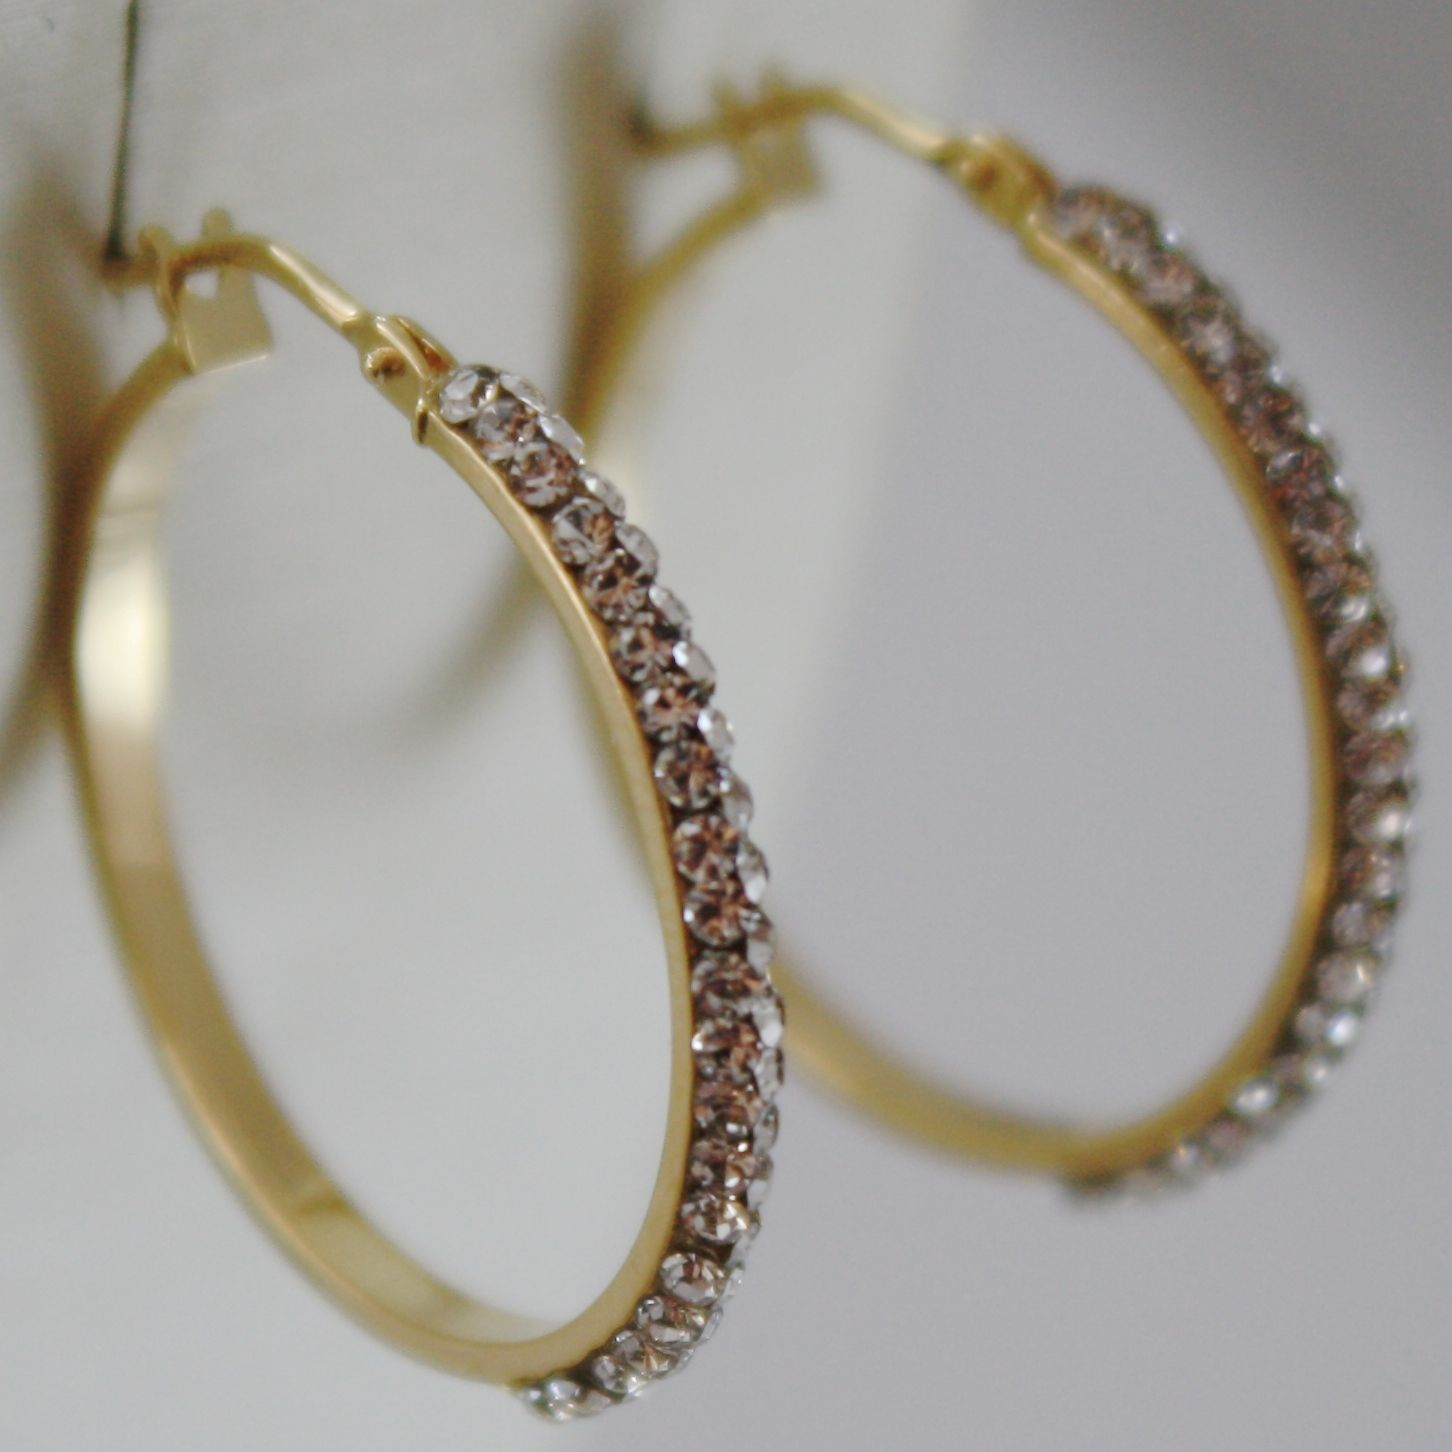 SOLID 18K YELLOW GOLD CIRCLE HOOP EARRINGS WITH ZIRCONIA LUMINOUS MADE IN ITALY